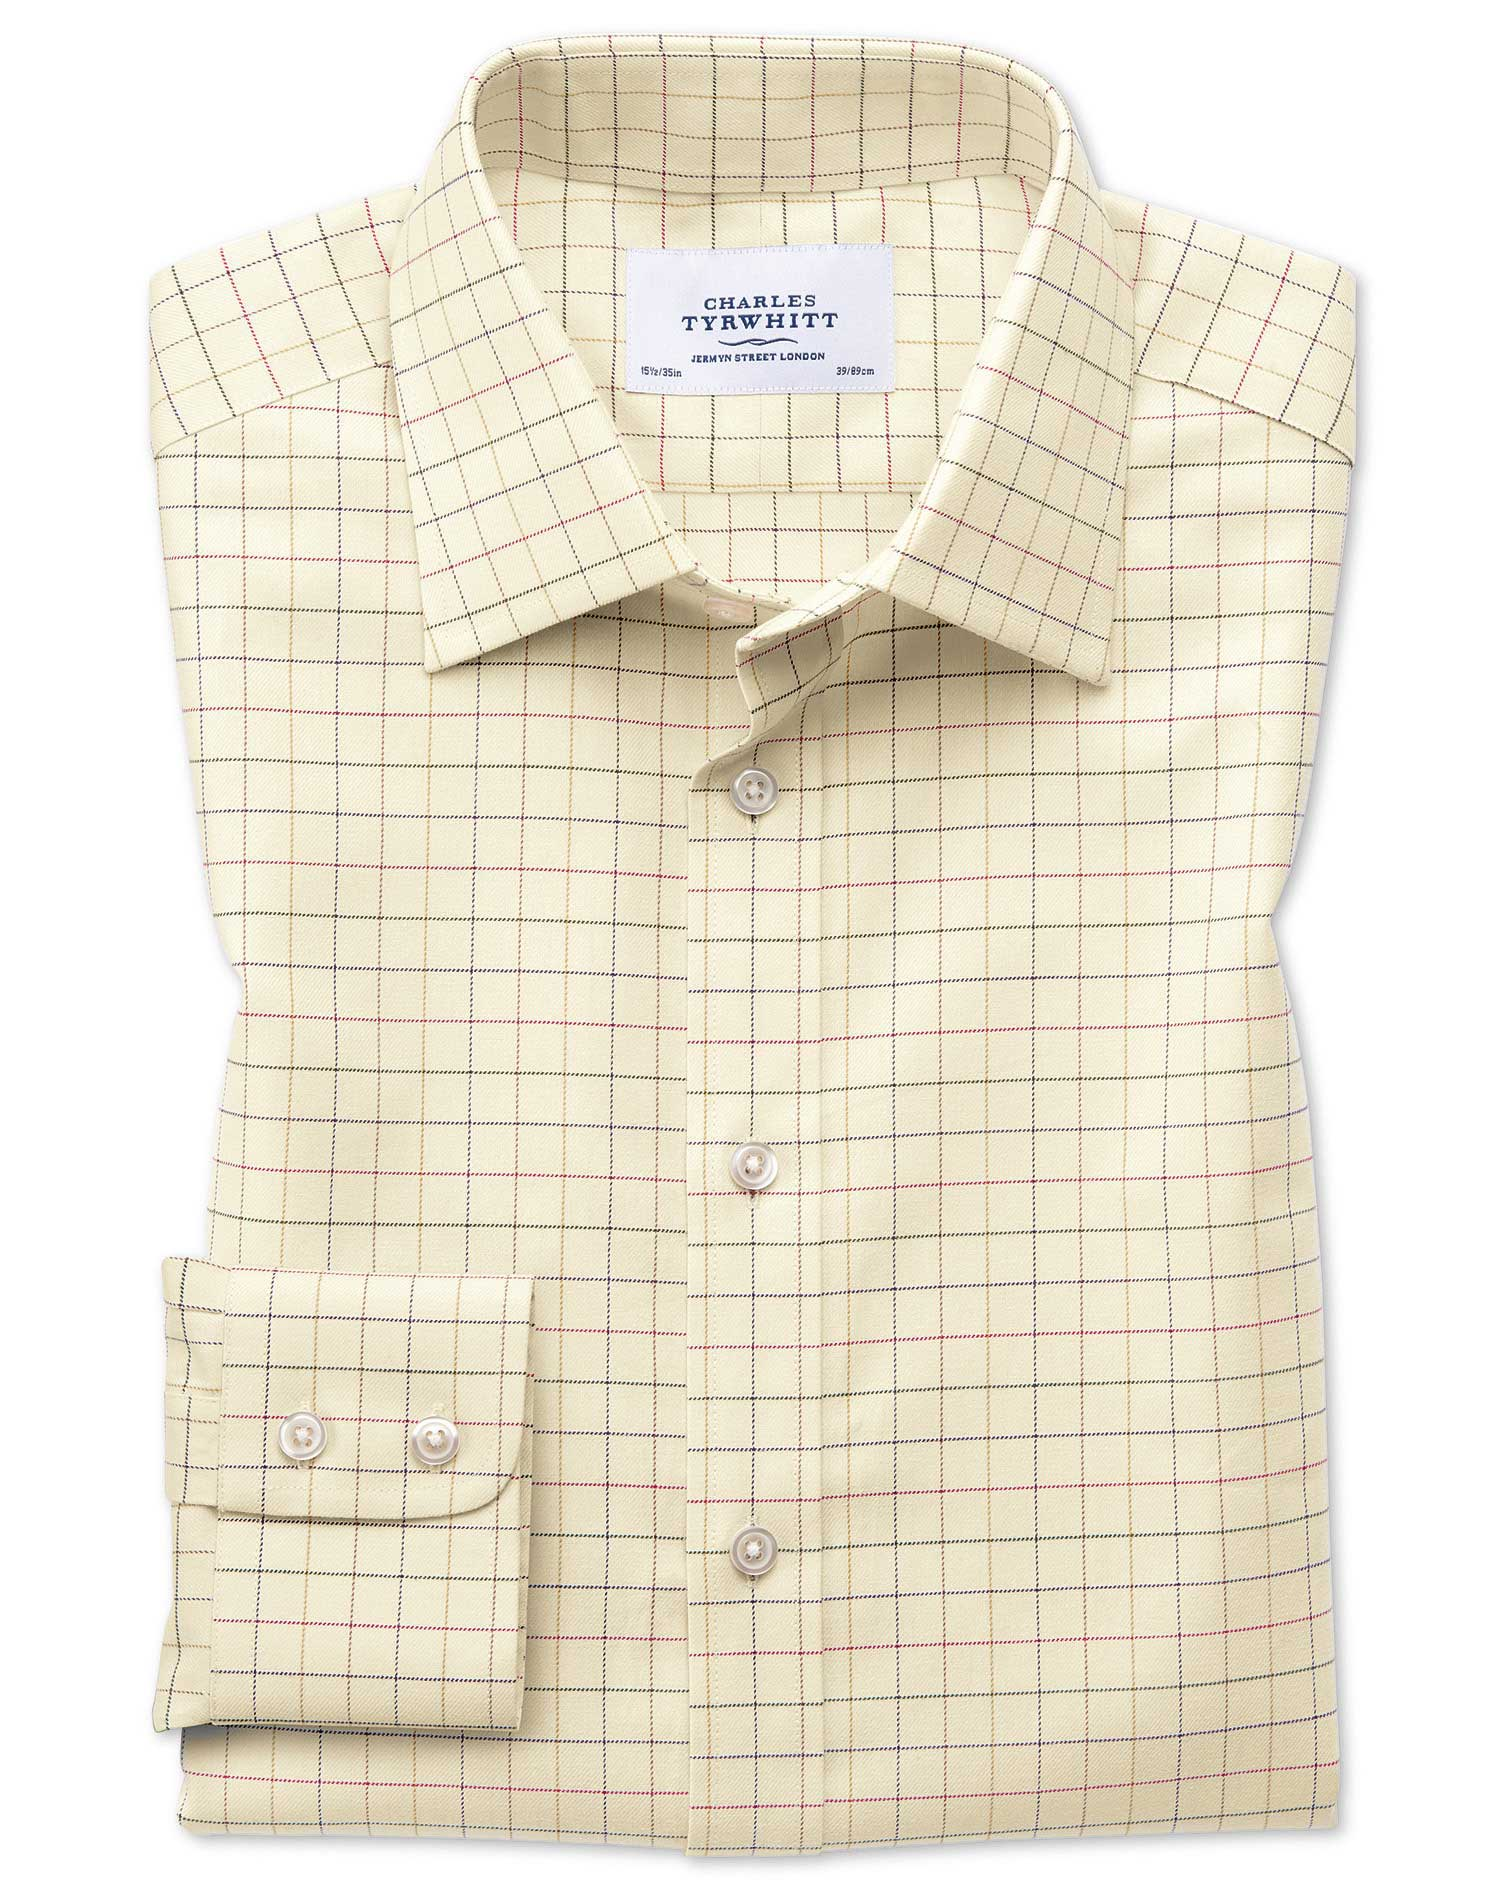 Extra Slim Fit Country Check Multi Cotton Formal Shirt Single Cuff Size 14.5/33 by Charles Tyrwhitt